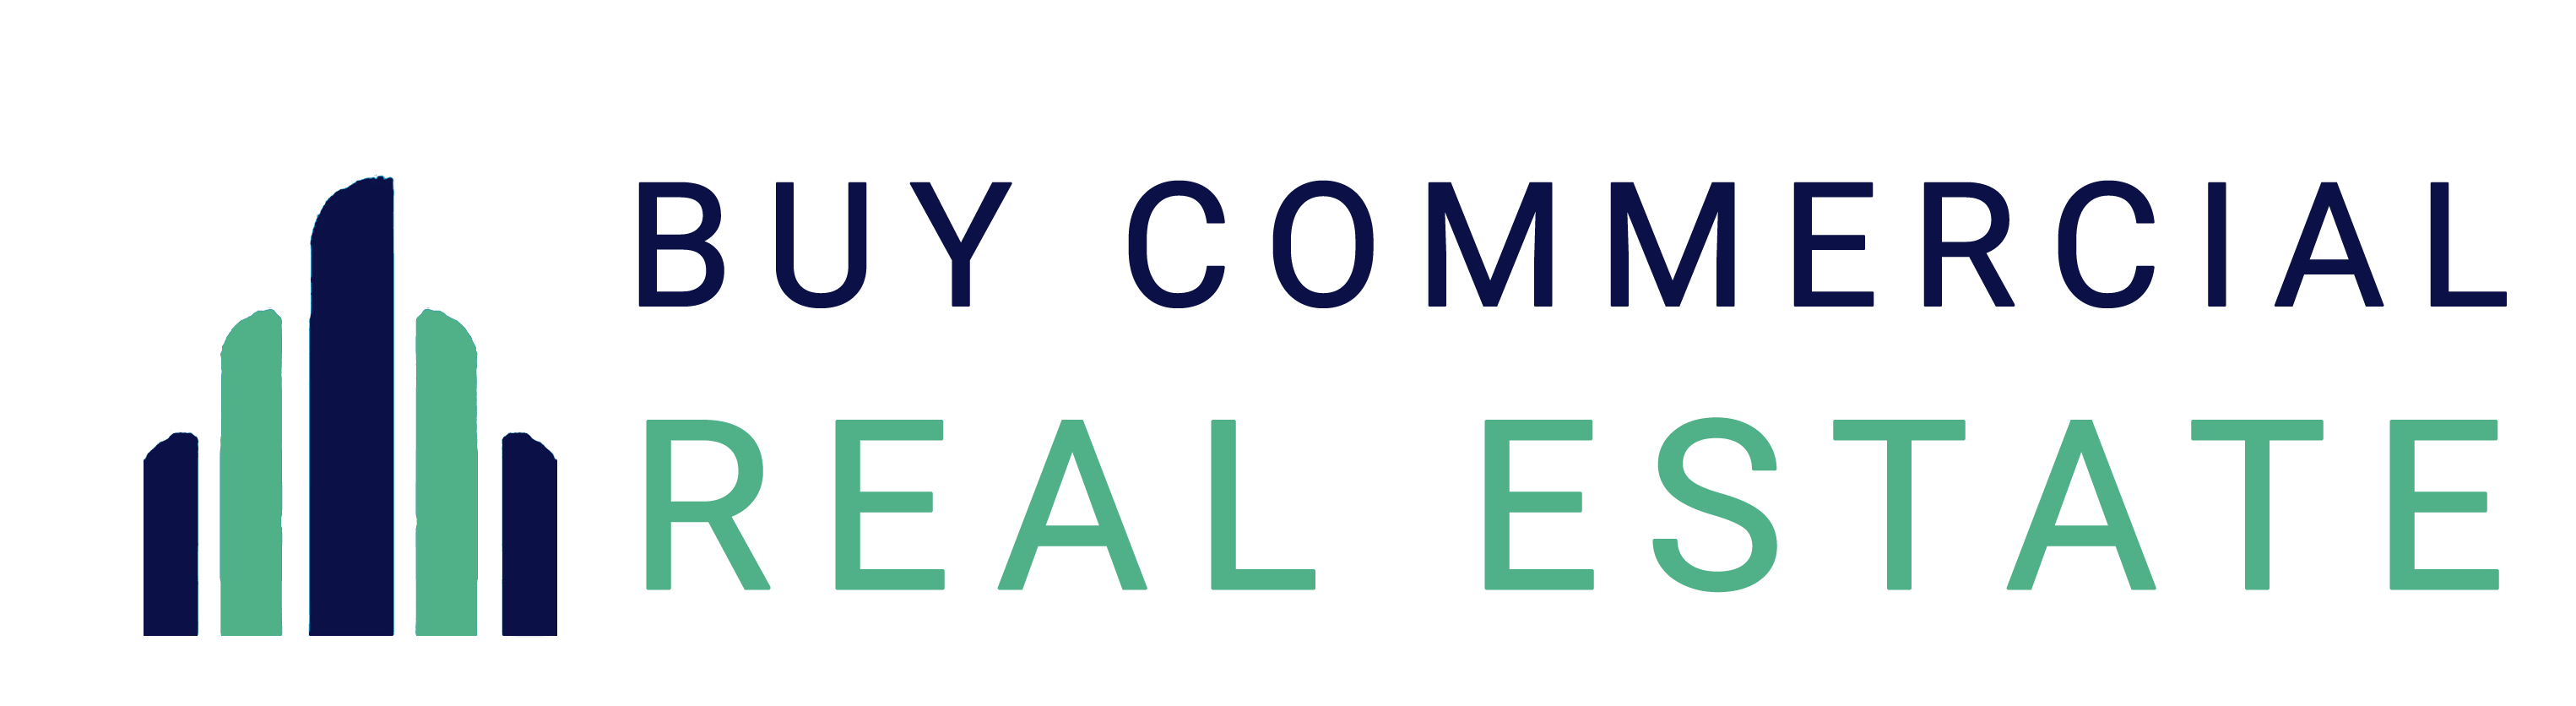 Buy Commercial Real Estate